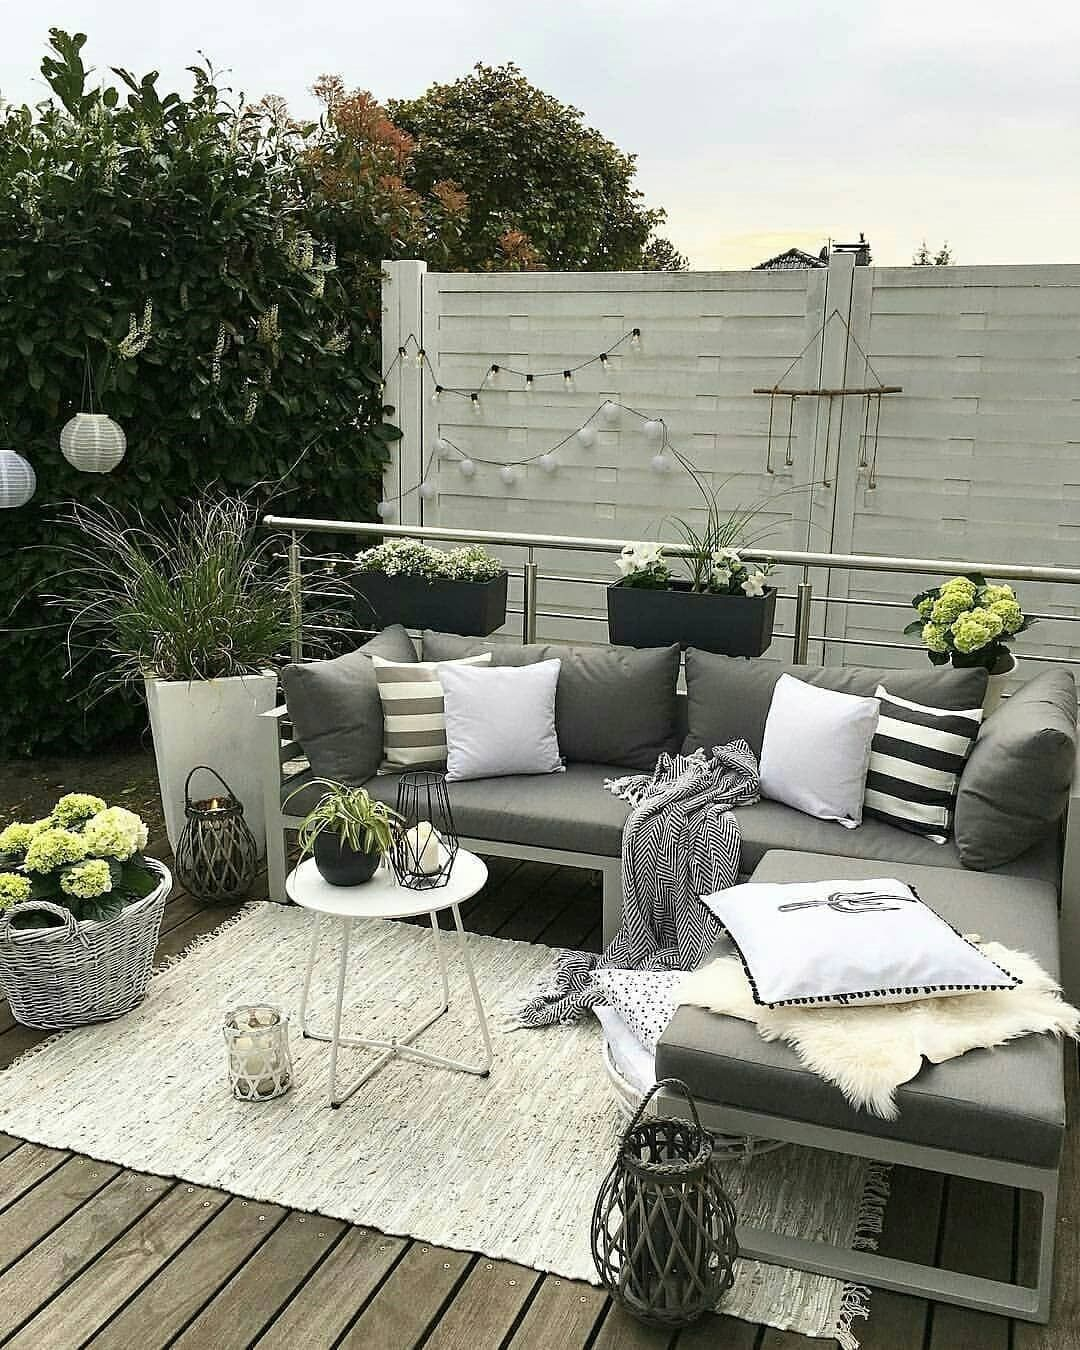 Goodevening Home Lovers We Are Loving This Outdoor Setting